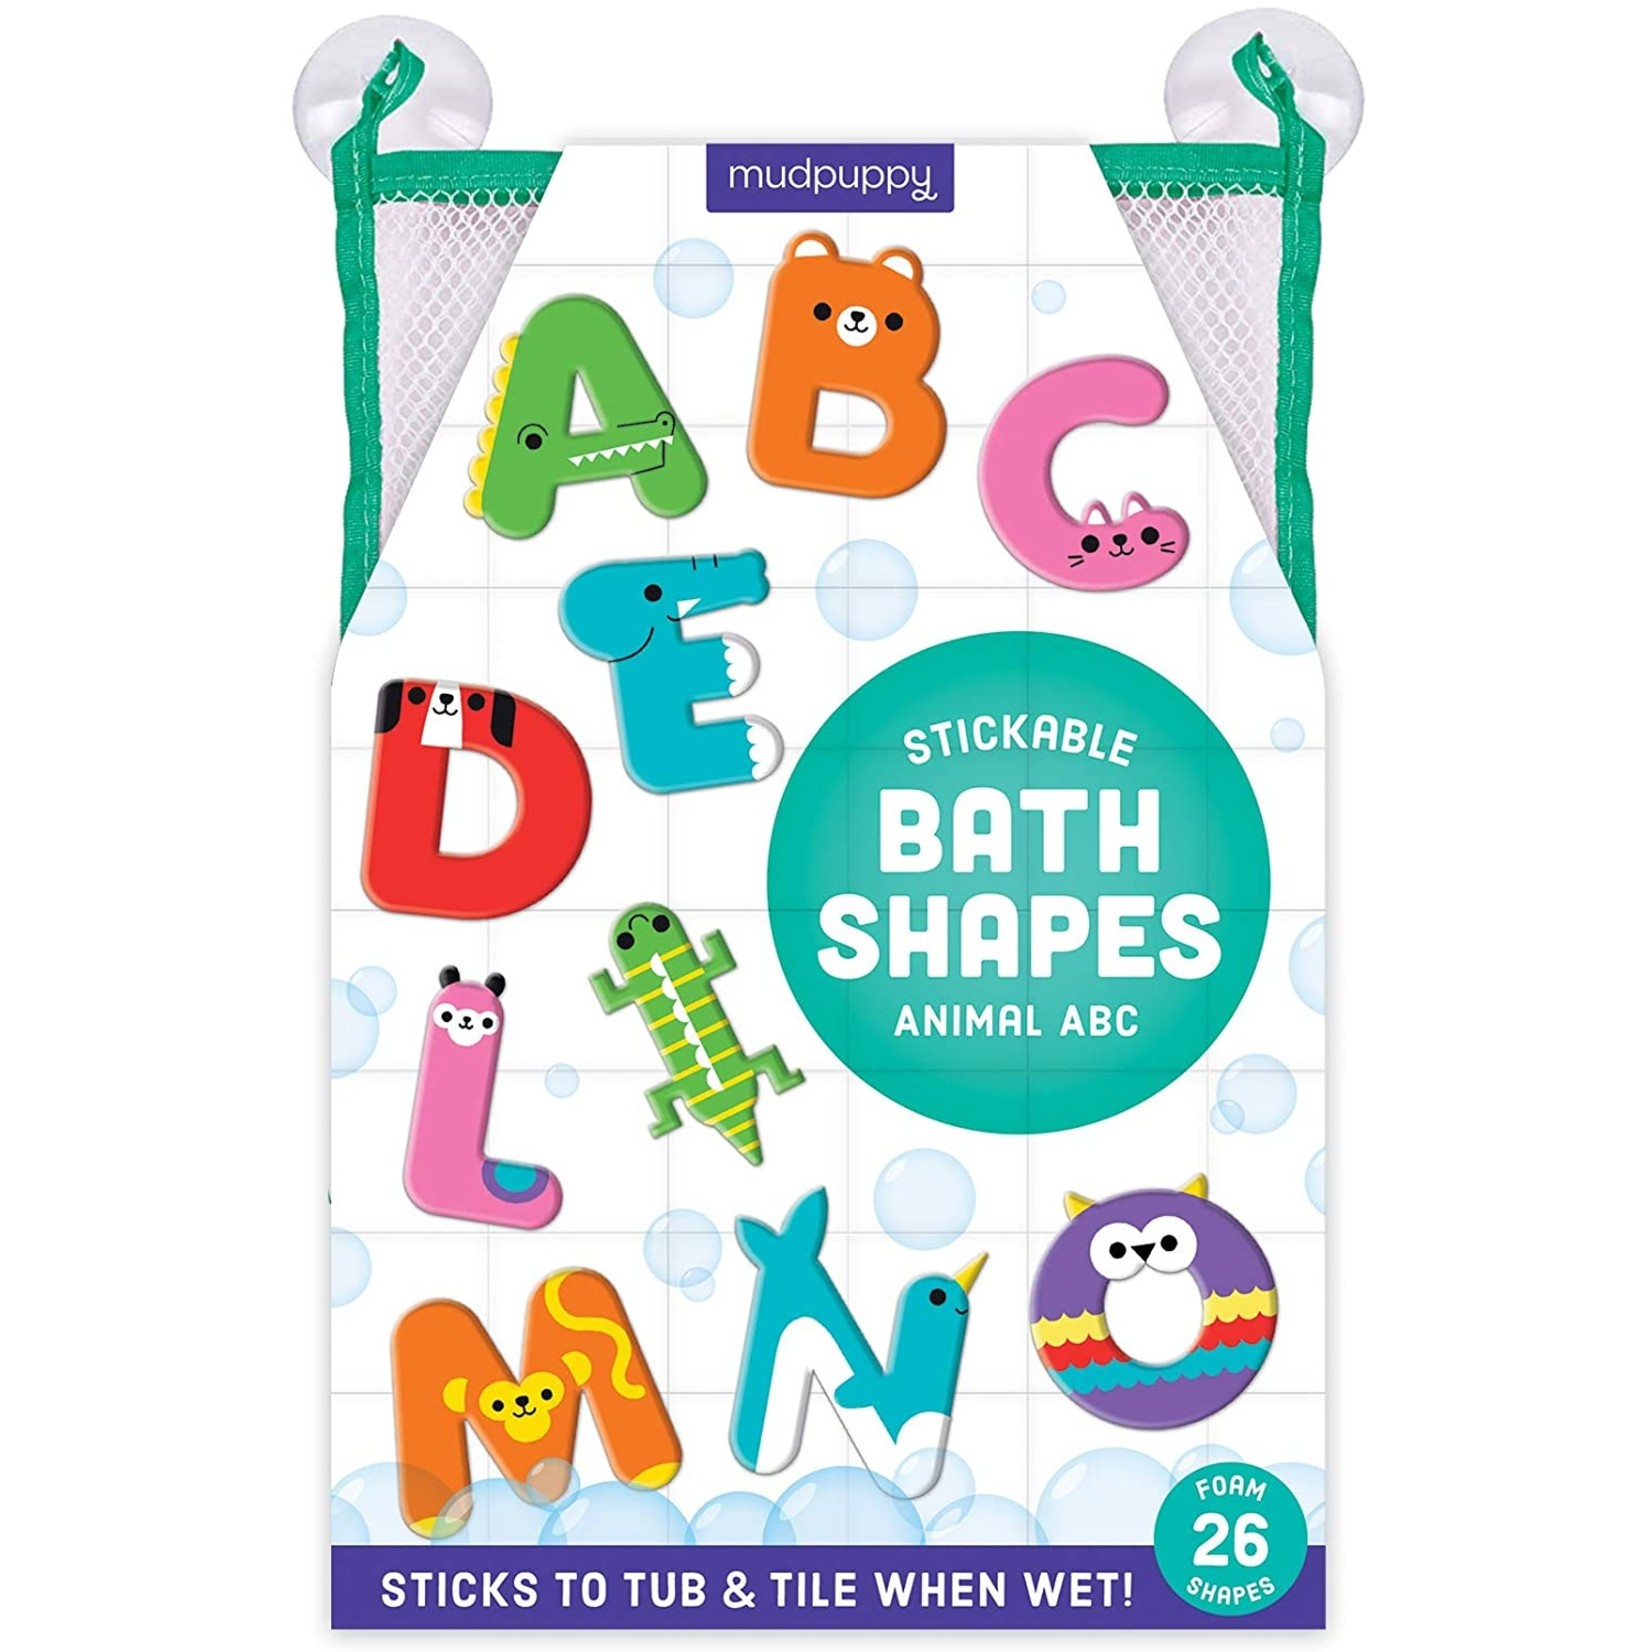 Animal ABC Bath Letters